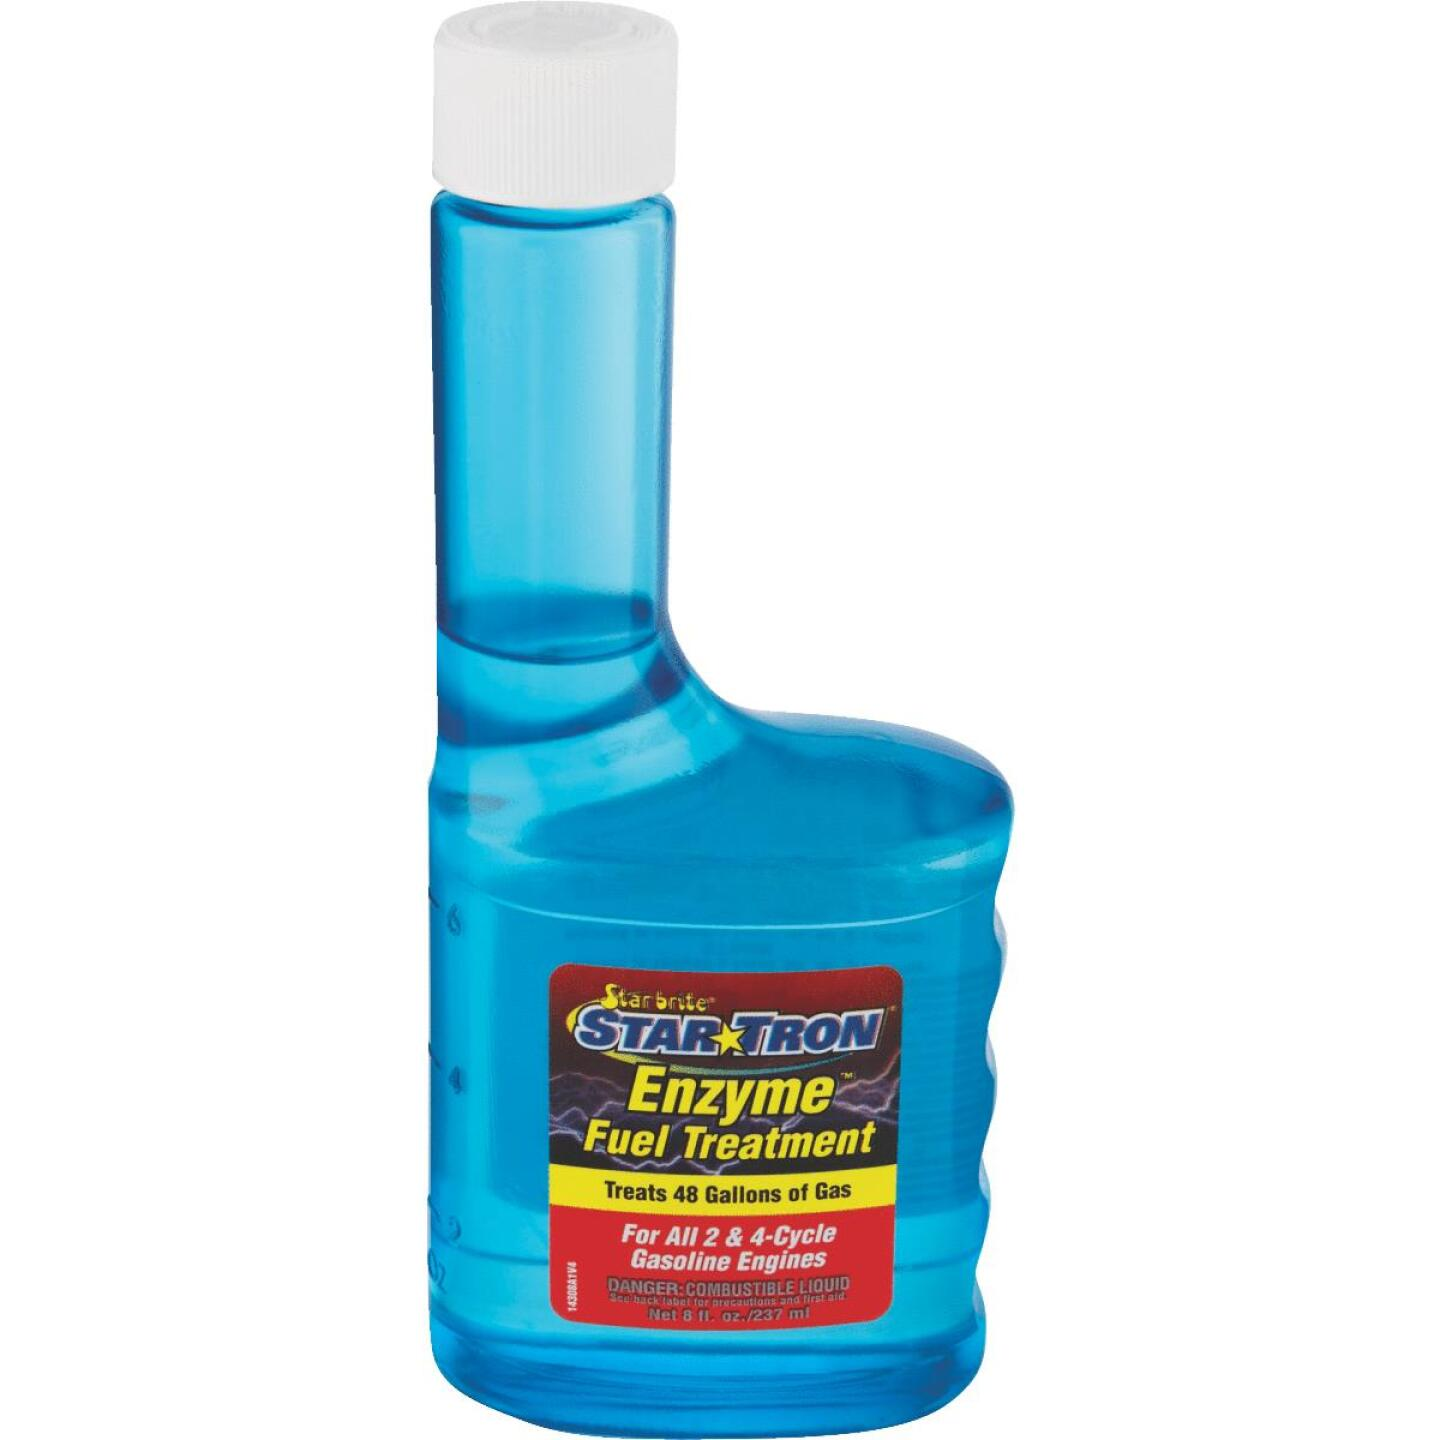 Starbrite 8 Fl. Oz. Star Tron Enzyme Gas Treatment Image 2